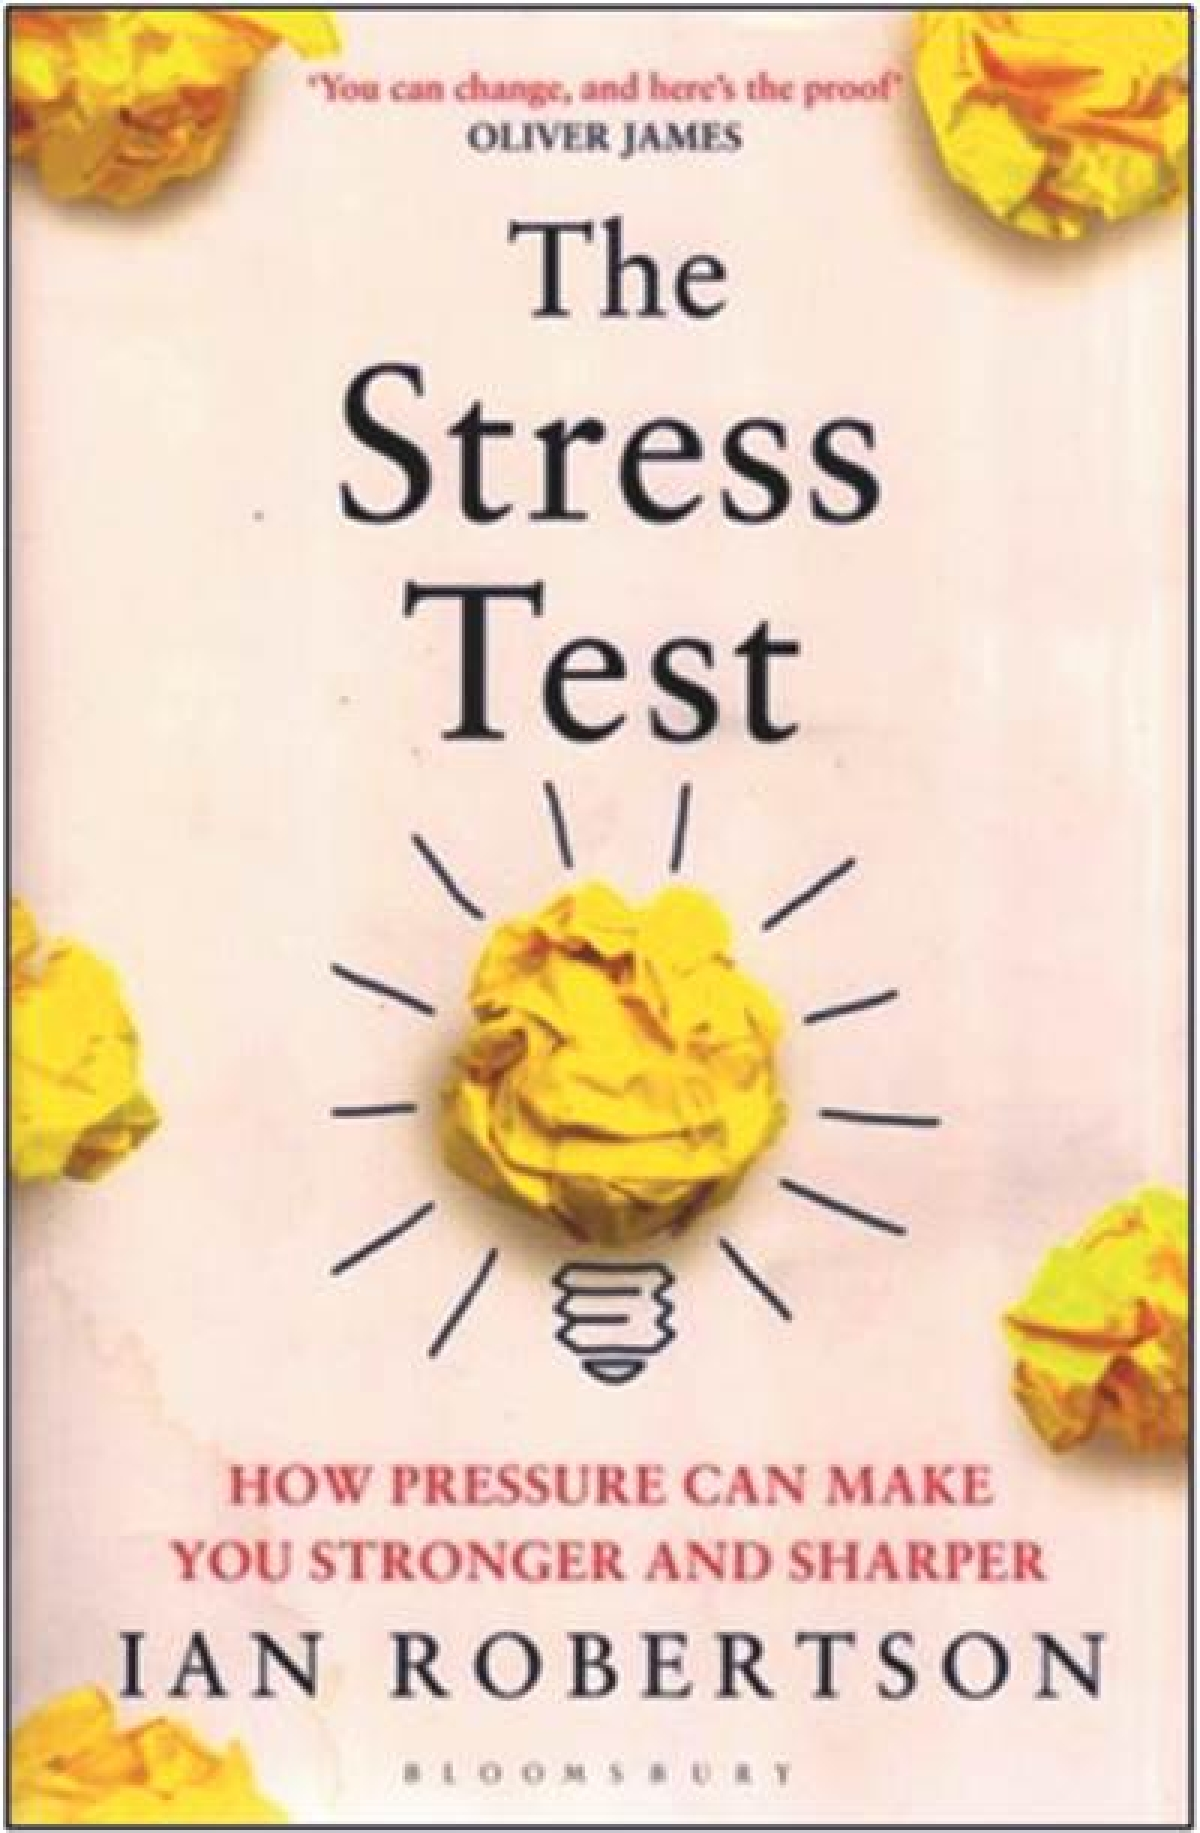 Mental Balance and Control: The Stress Test by Ian Robertson by Stanley Coutinho